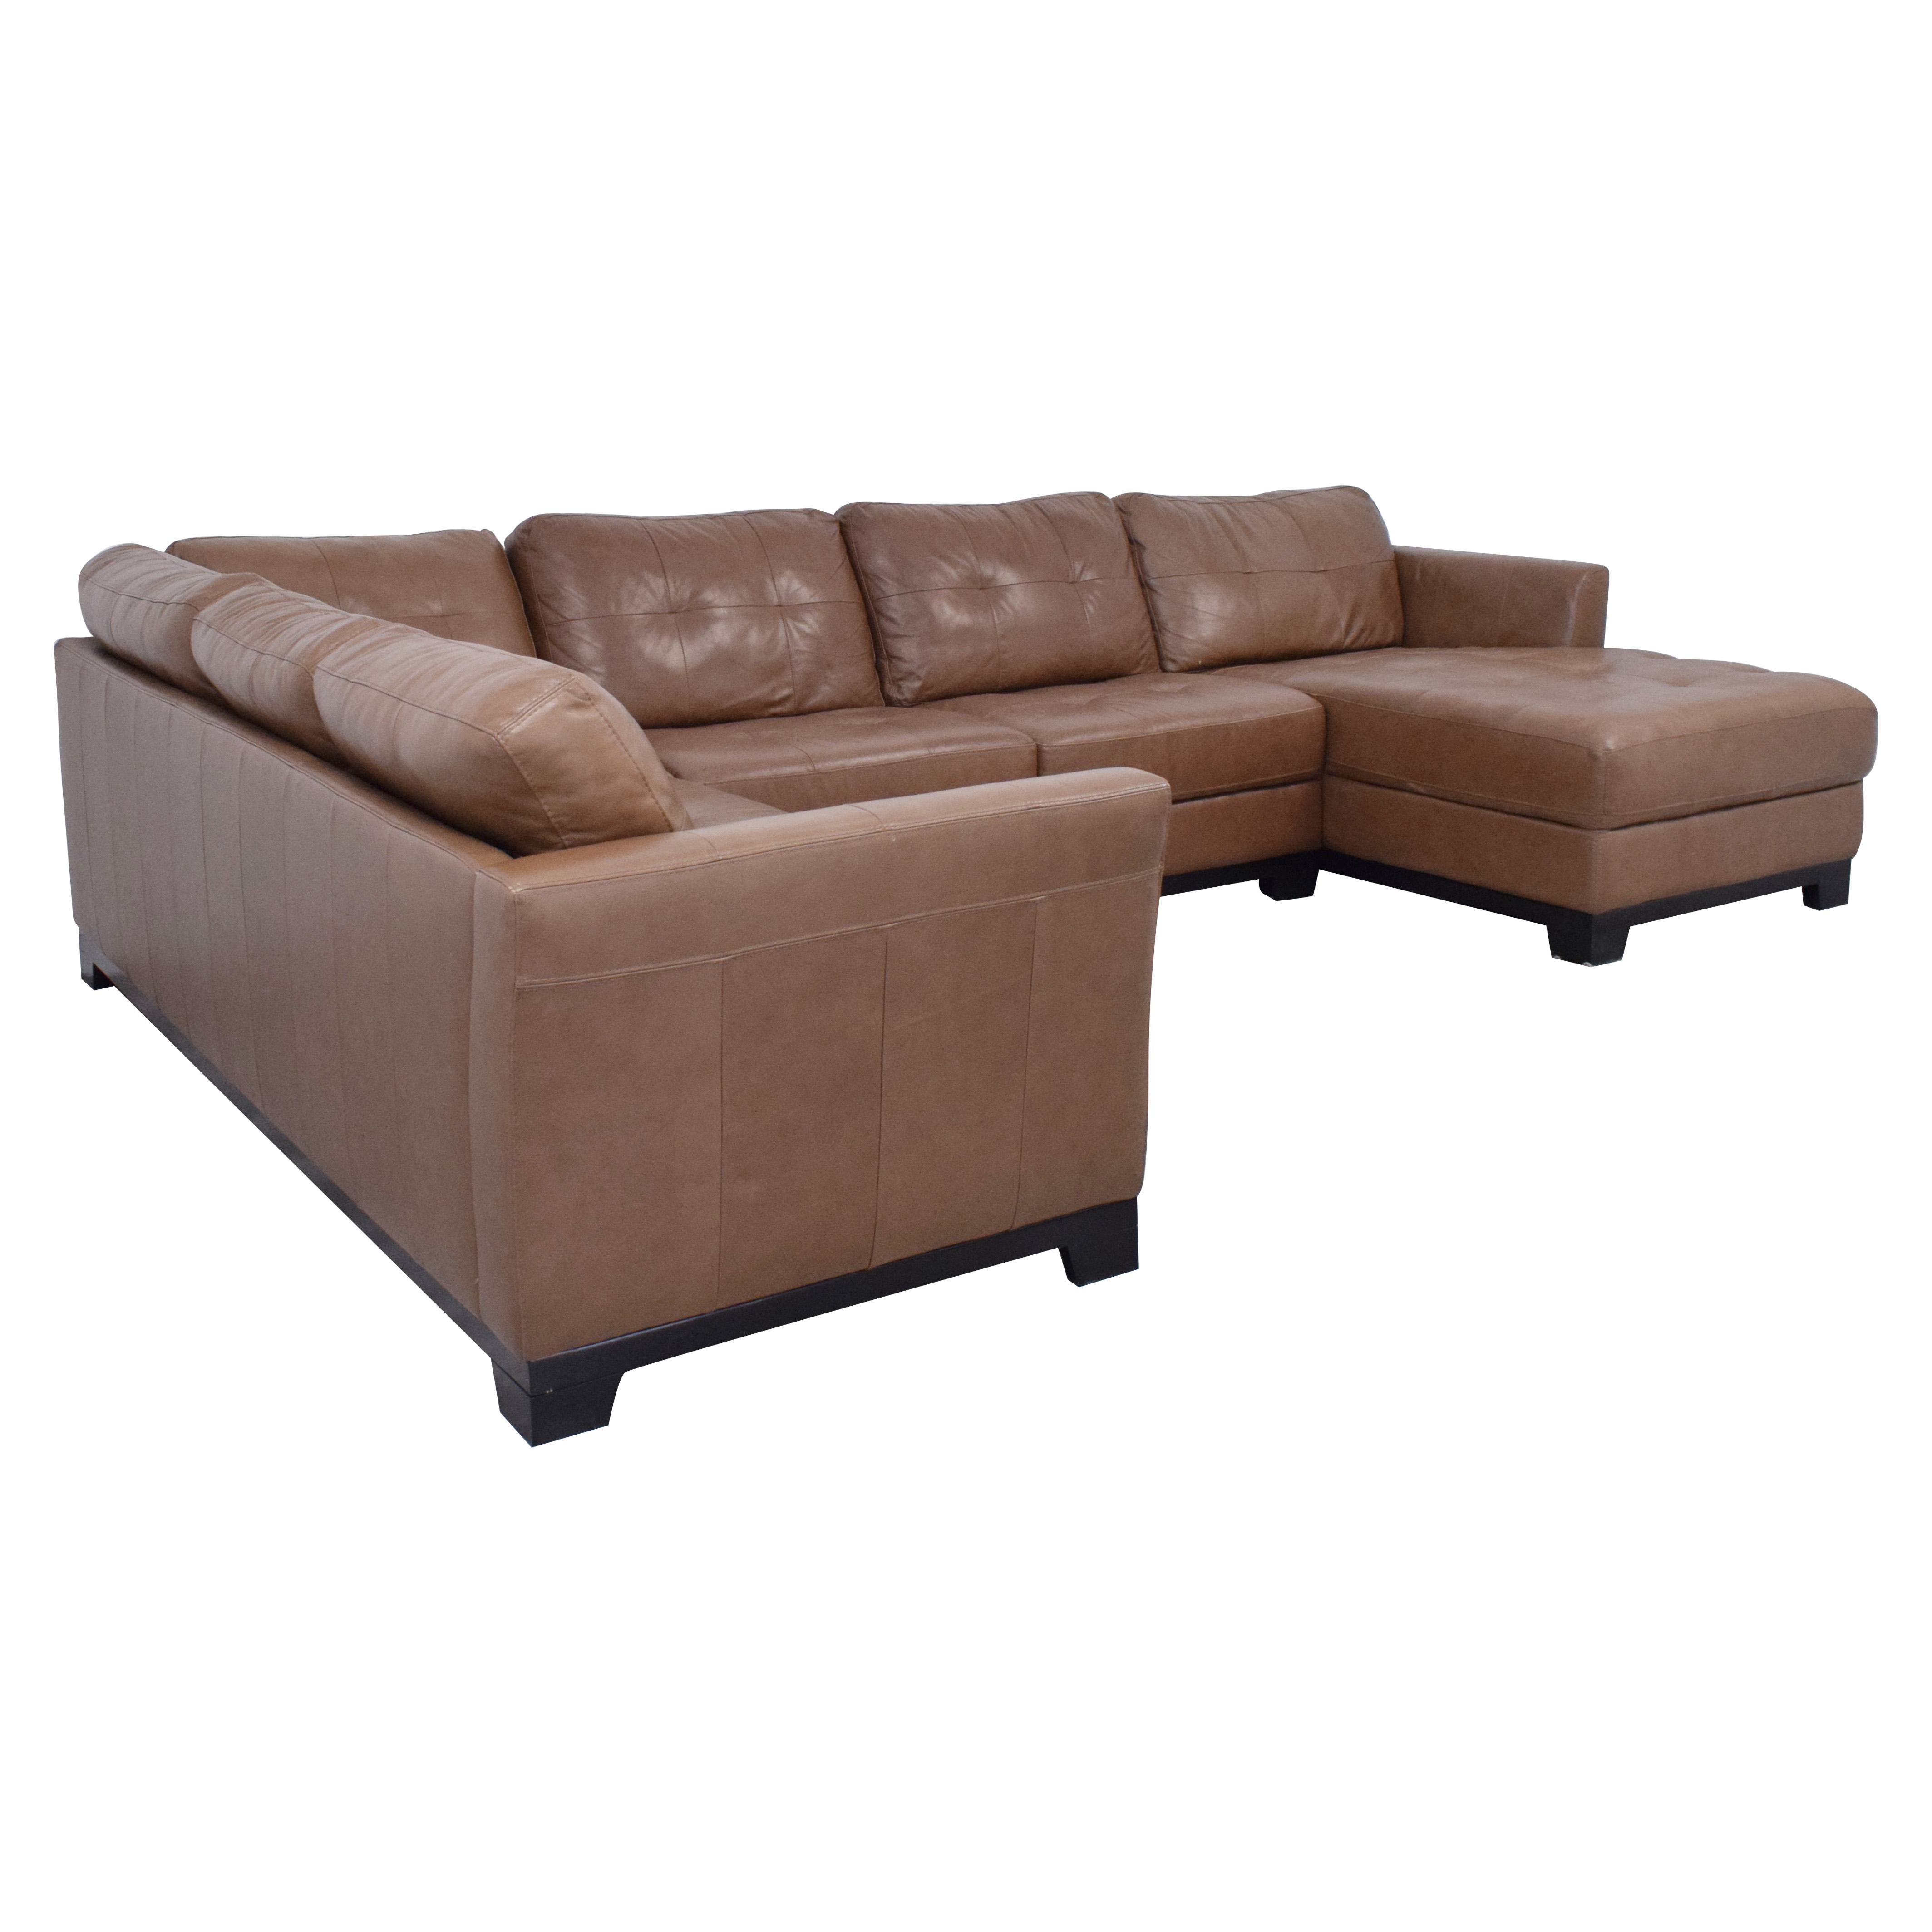 Chateau d'Ax Chateau d'Ax Sectional Sofa with Chaise brown